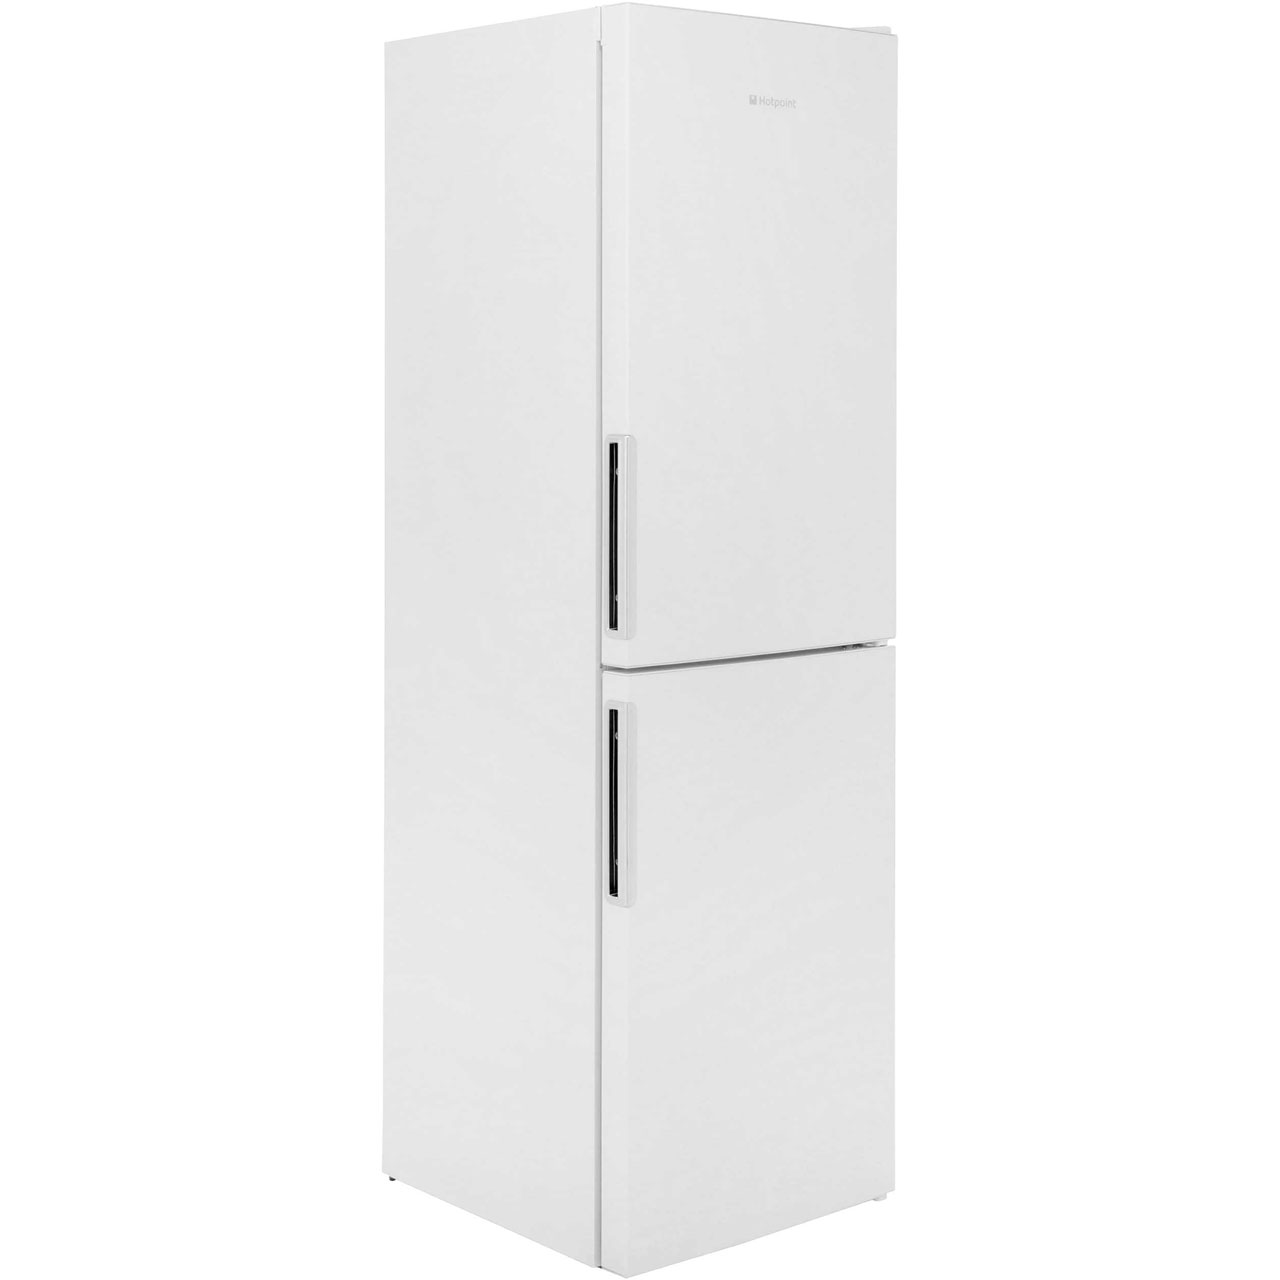 Hotpoint XAO95T1IW Free Standing Fridge Freezer Frost Free in White